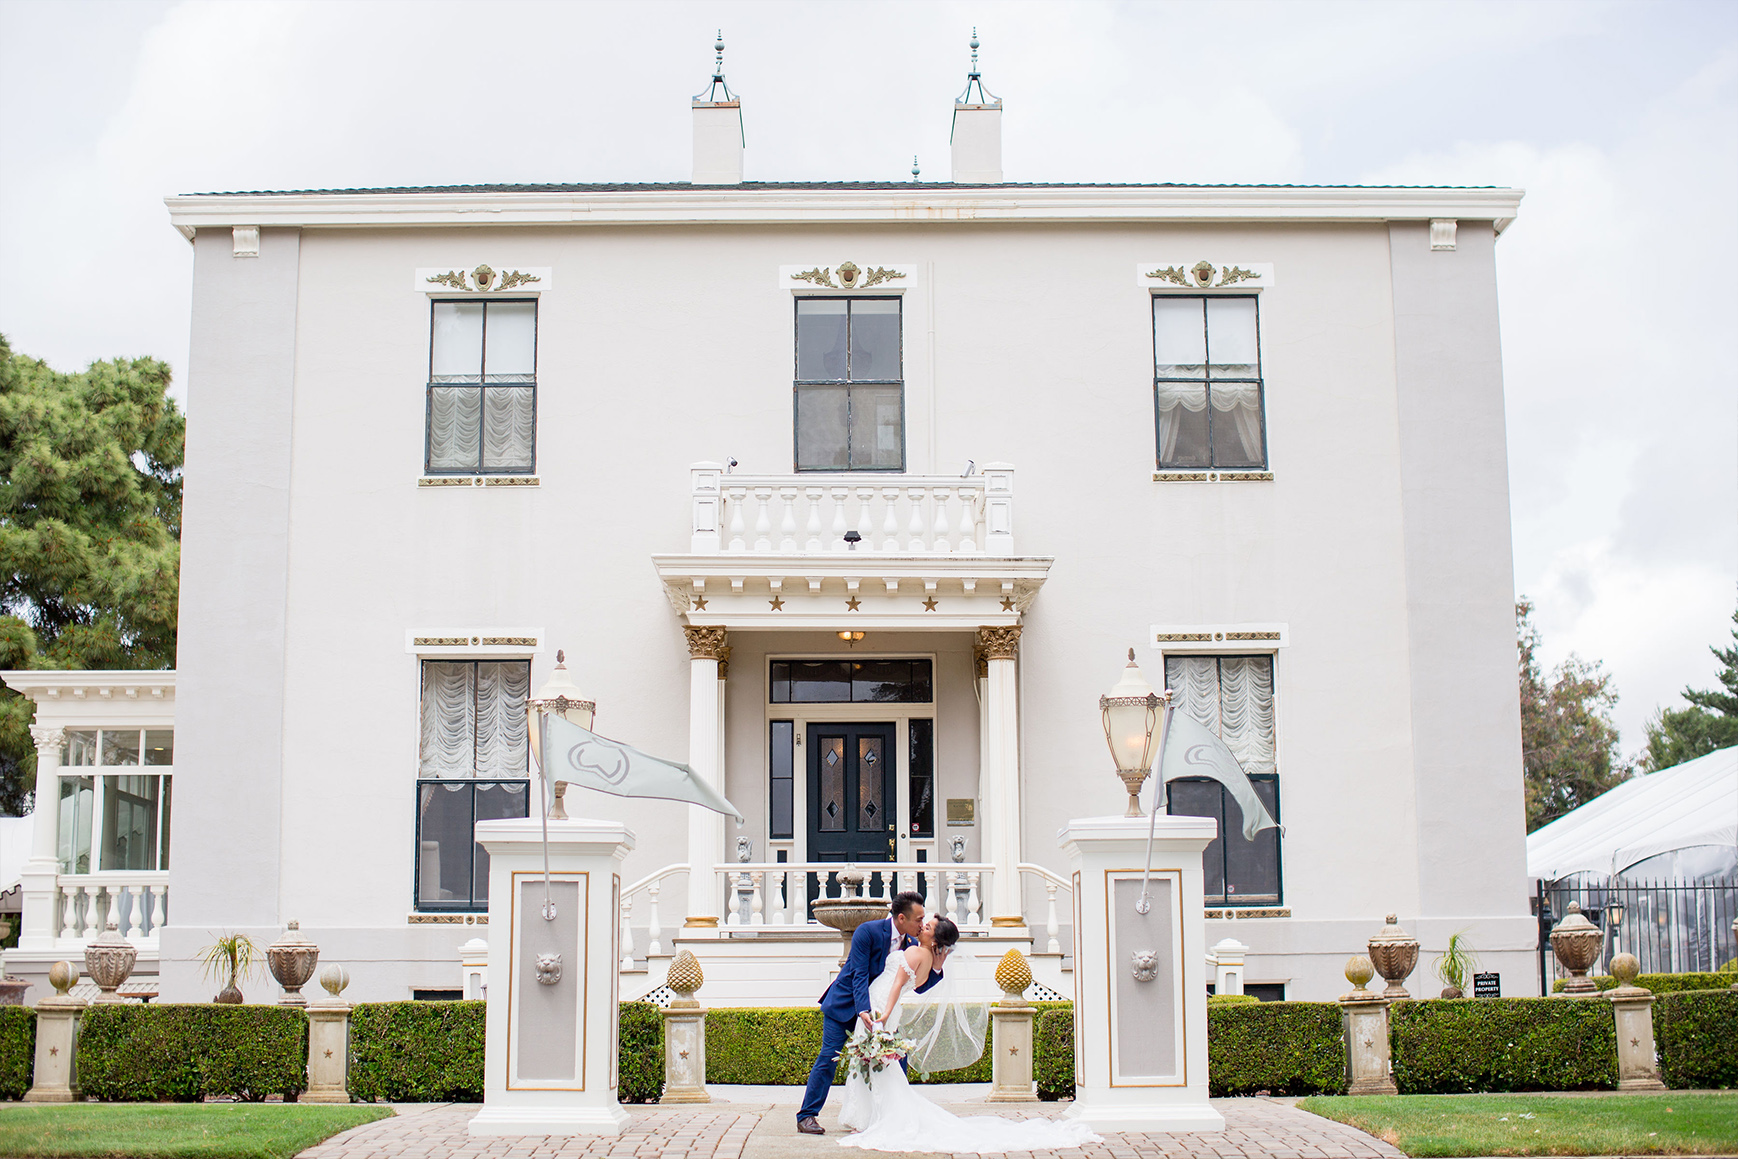 Kissing couple in front of the mansion - Jefferson Street Mansion - Benicia, California - Solano County - Wedgewood Weddings